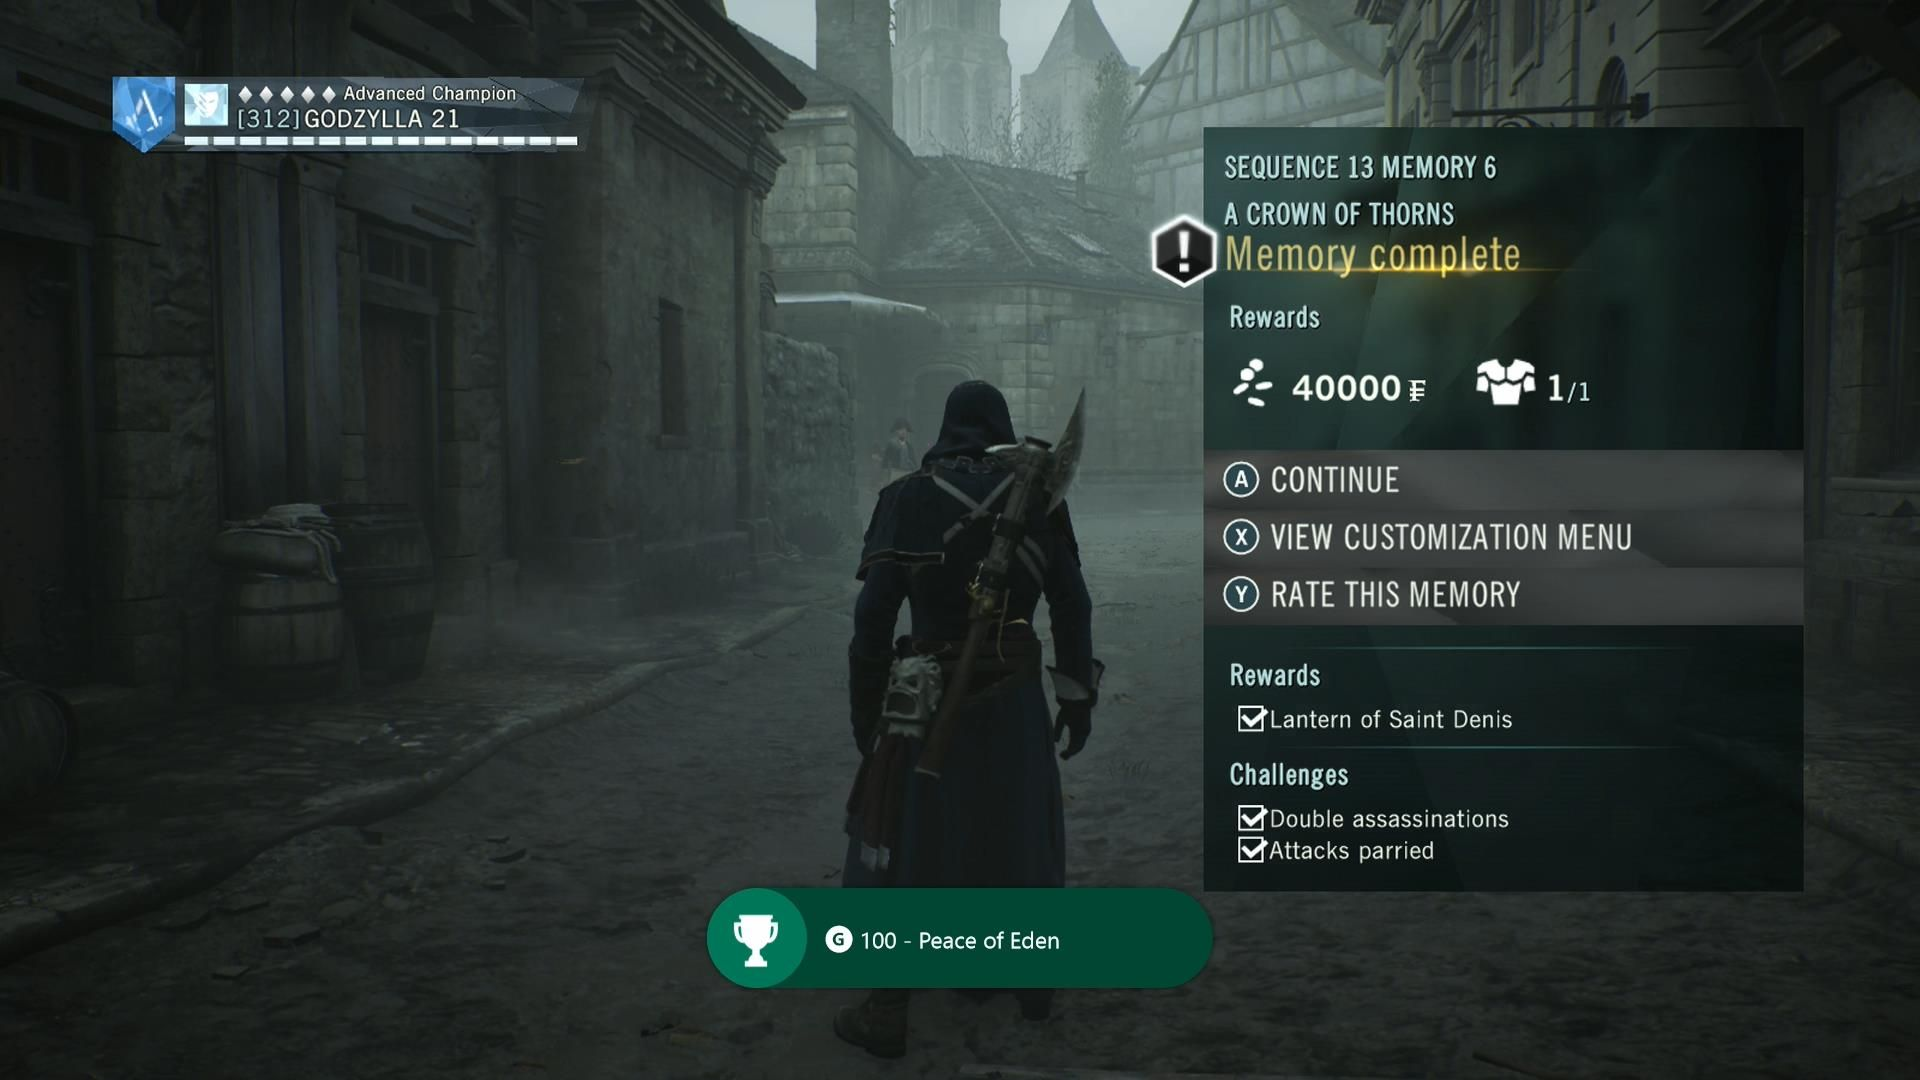 Assassin S Creed Unity Dead Kings Walkthrough Sequence 13 Memory 6